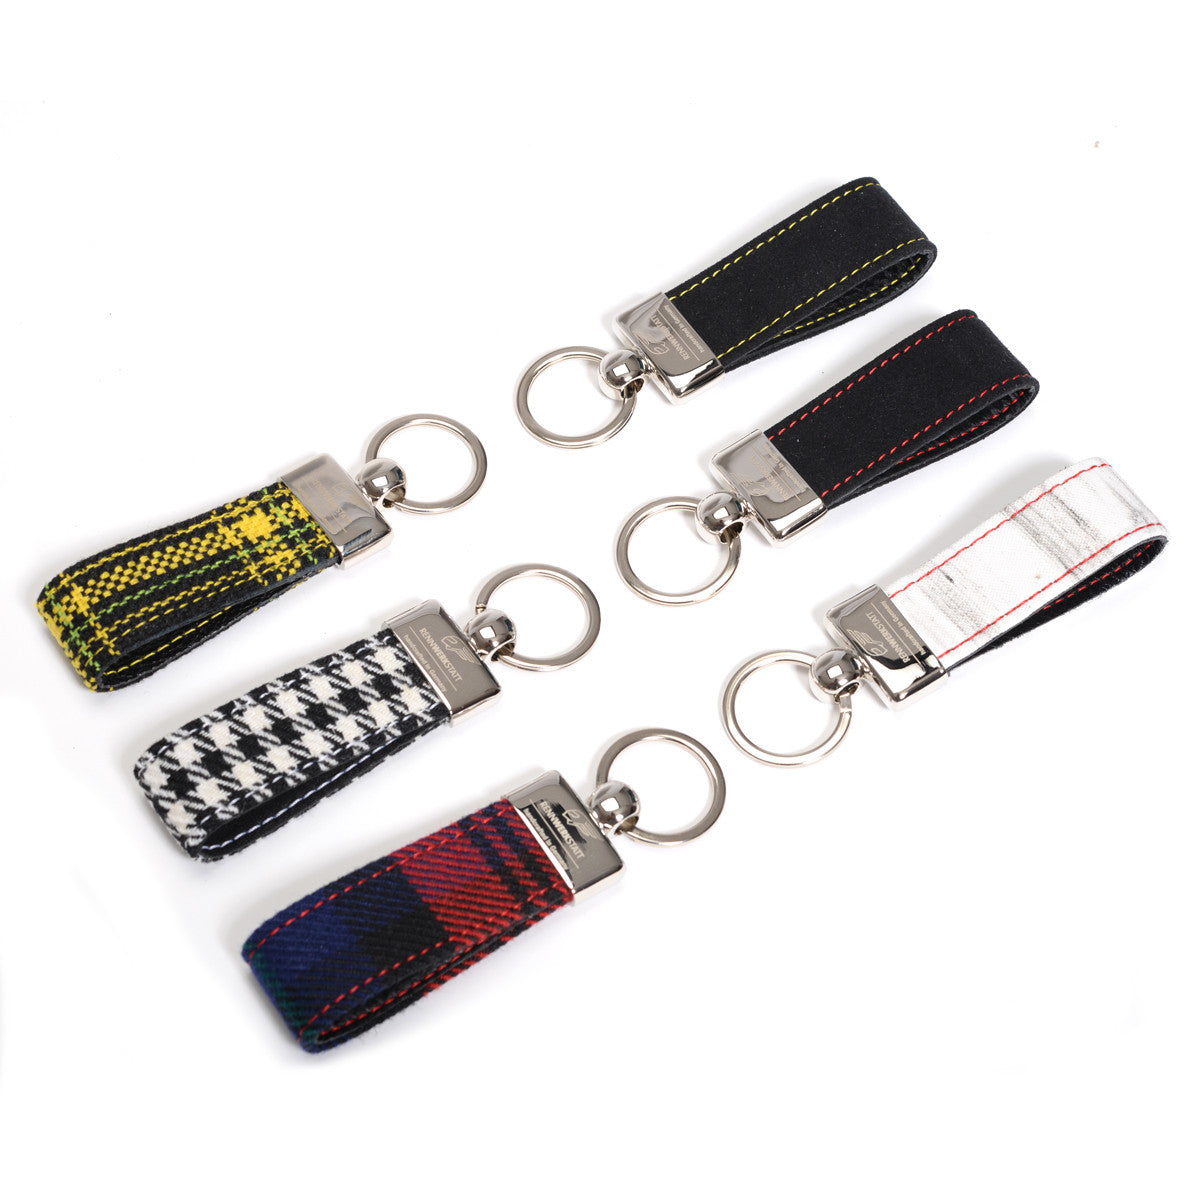 KeyRing - Tartan Red-Blue-Black